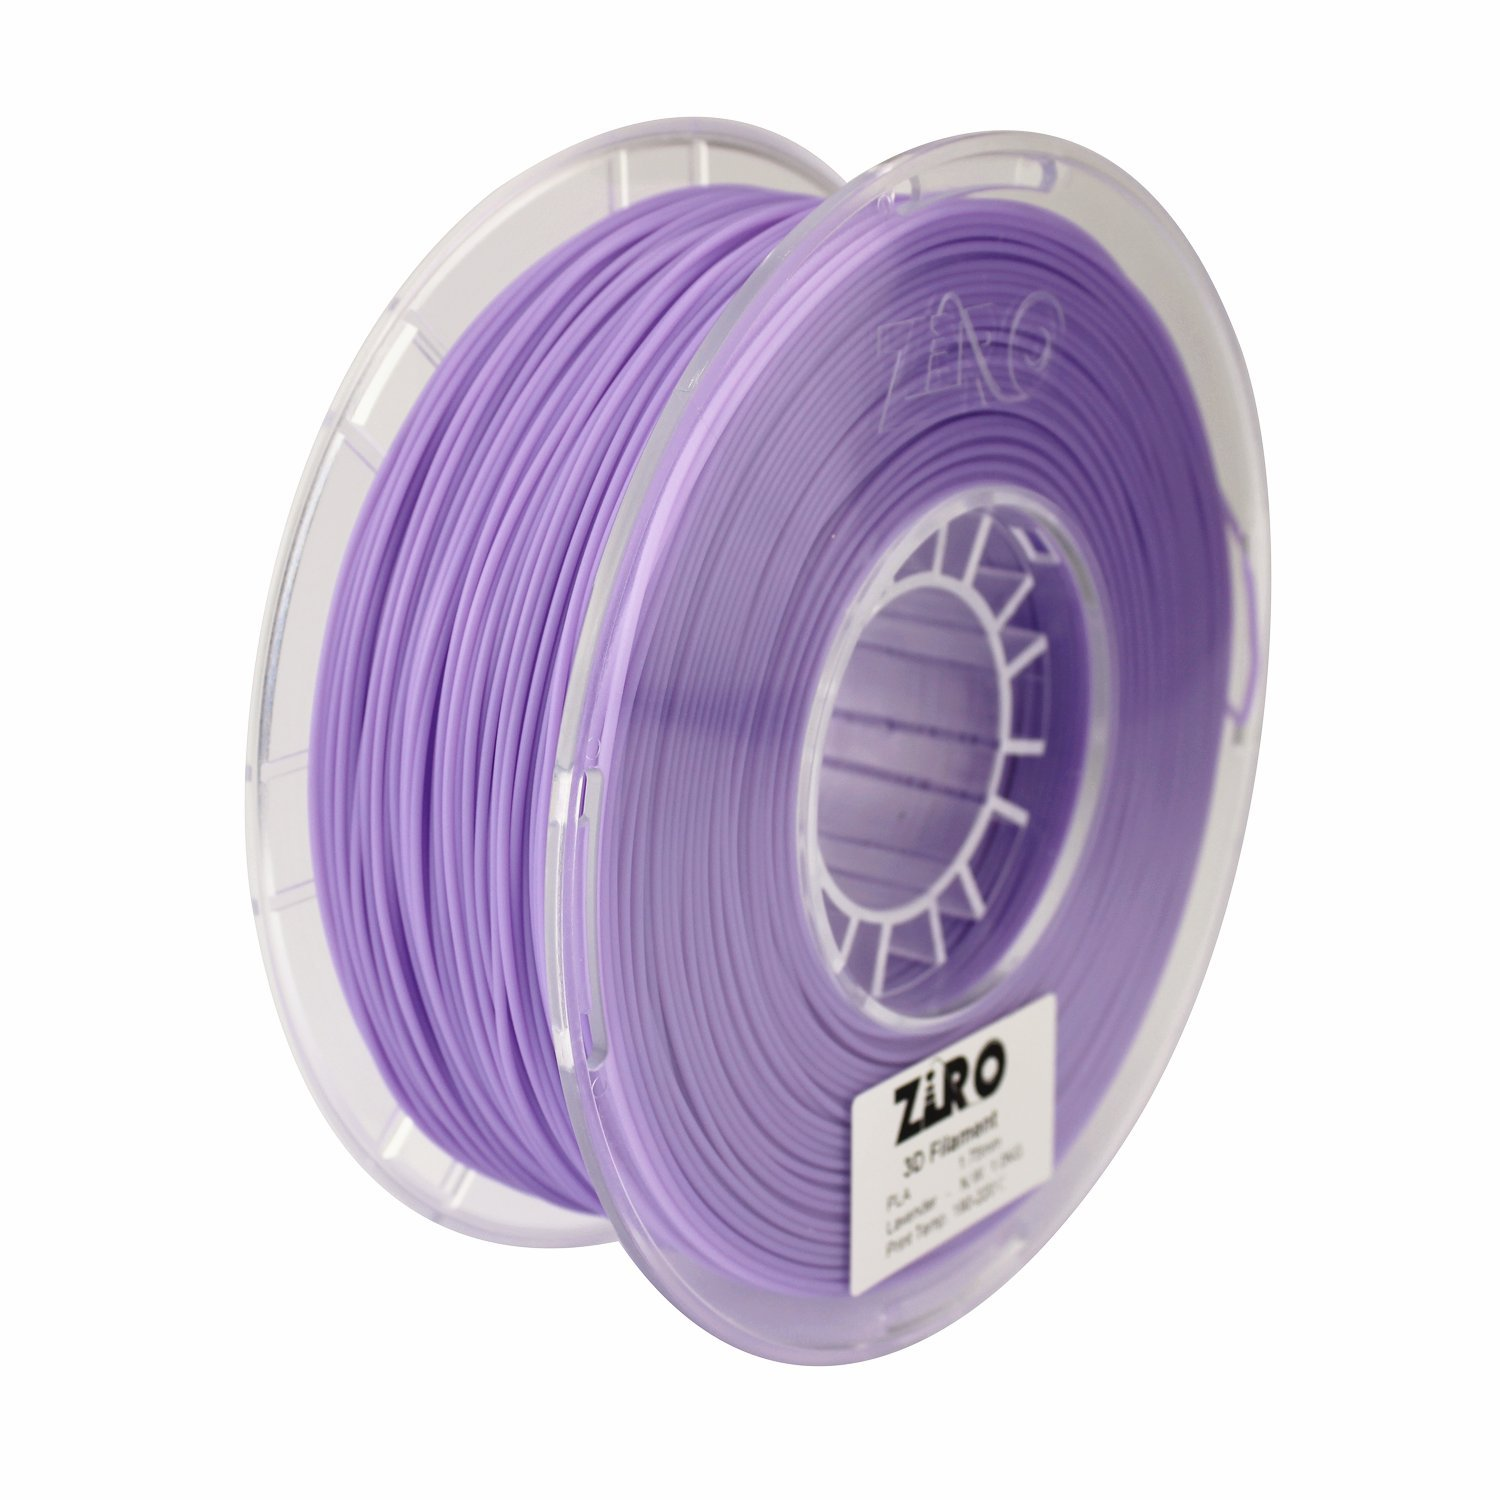 ZIRO 3D Printer Filament PLA 1.75 1KG(2.2lbs), Dimensional Accuracy +/- 0.05mm, Lavender